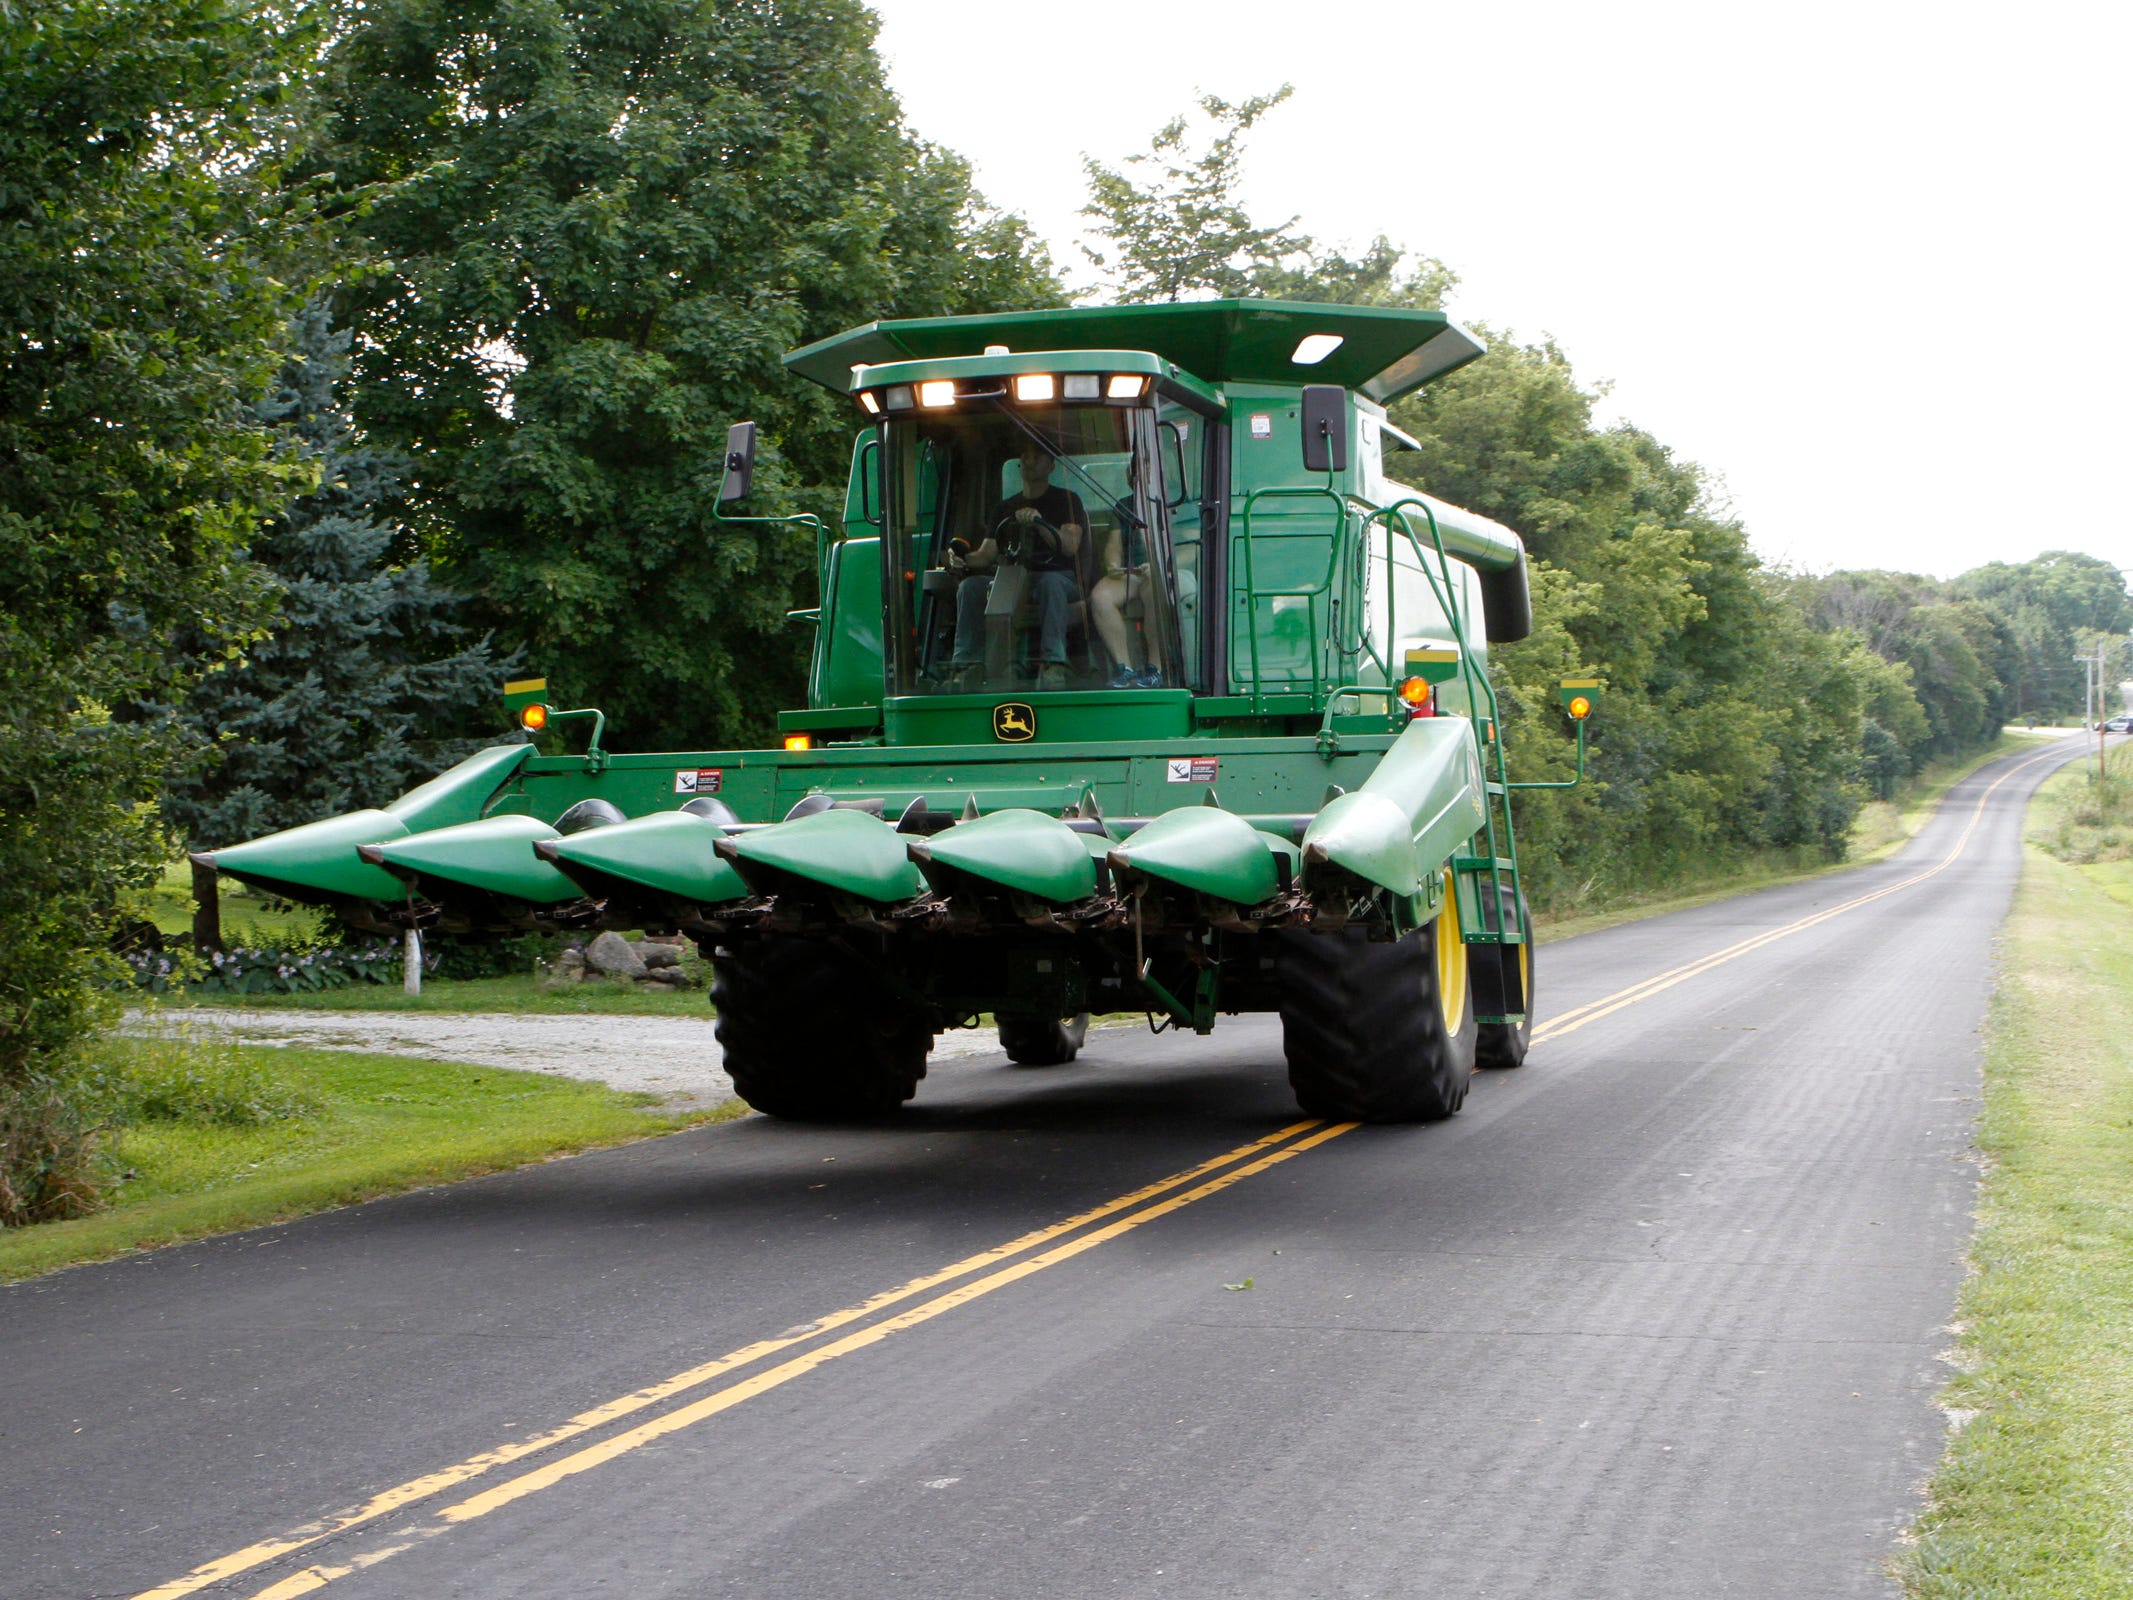 Wide farm equipment extends over the centerline on narrow roads.